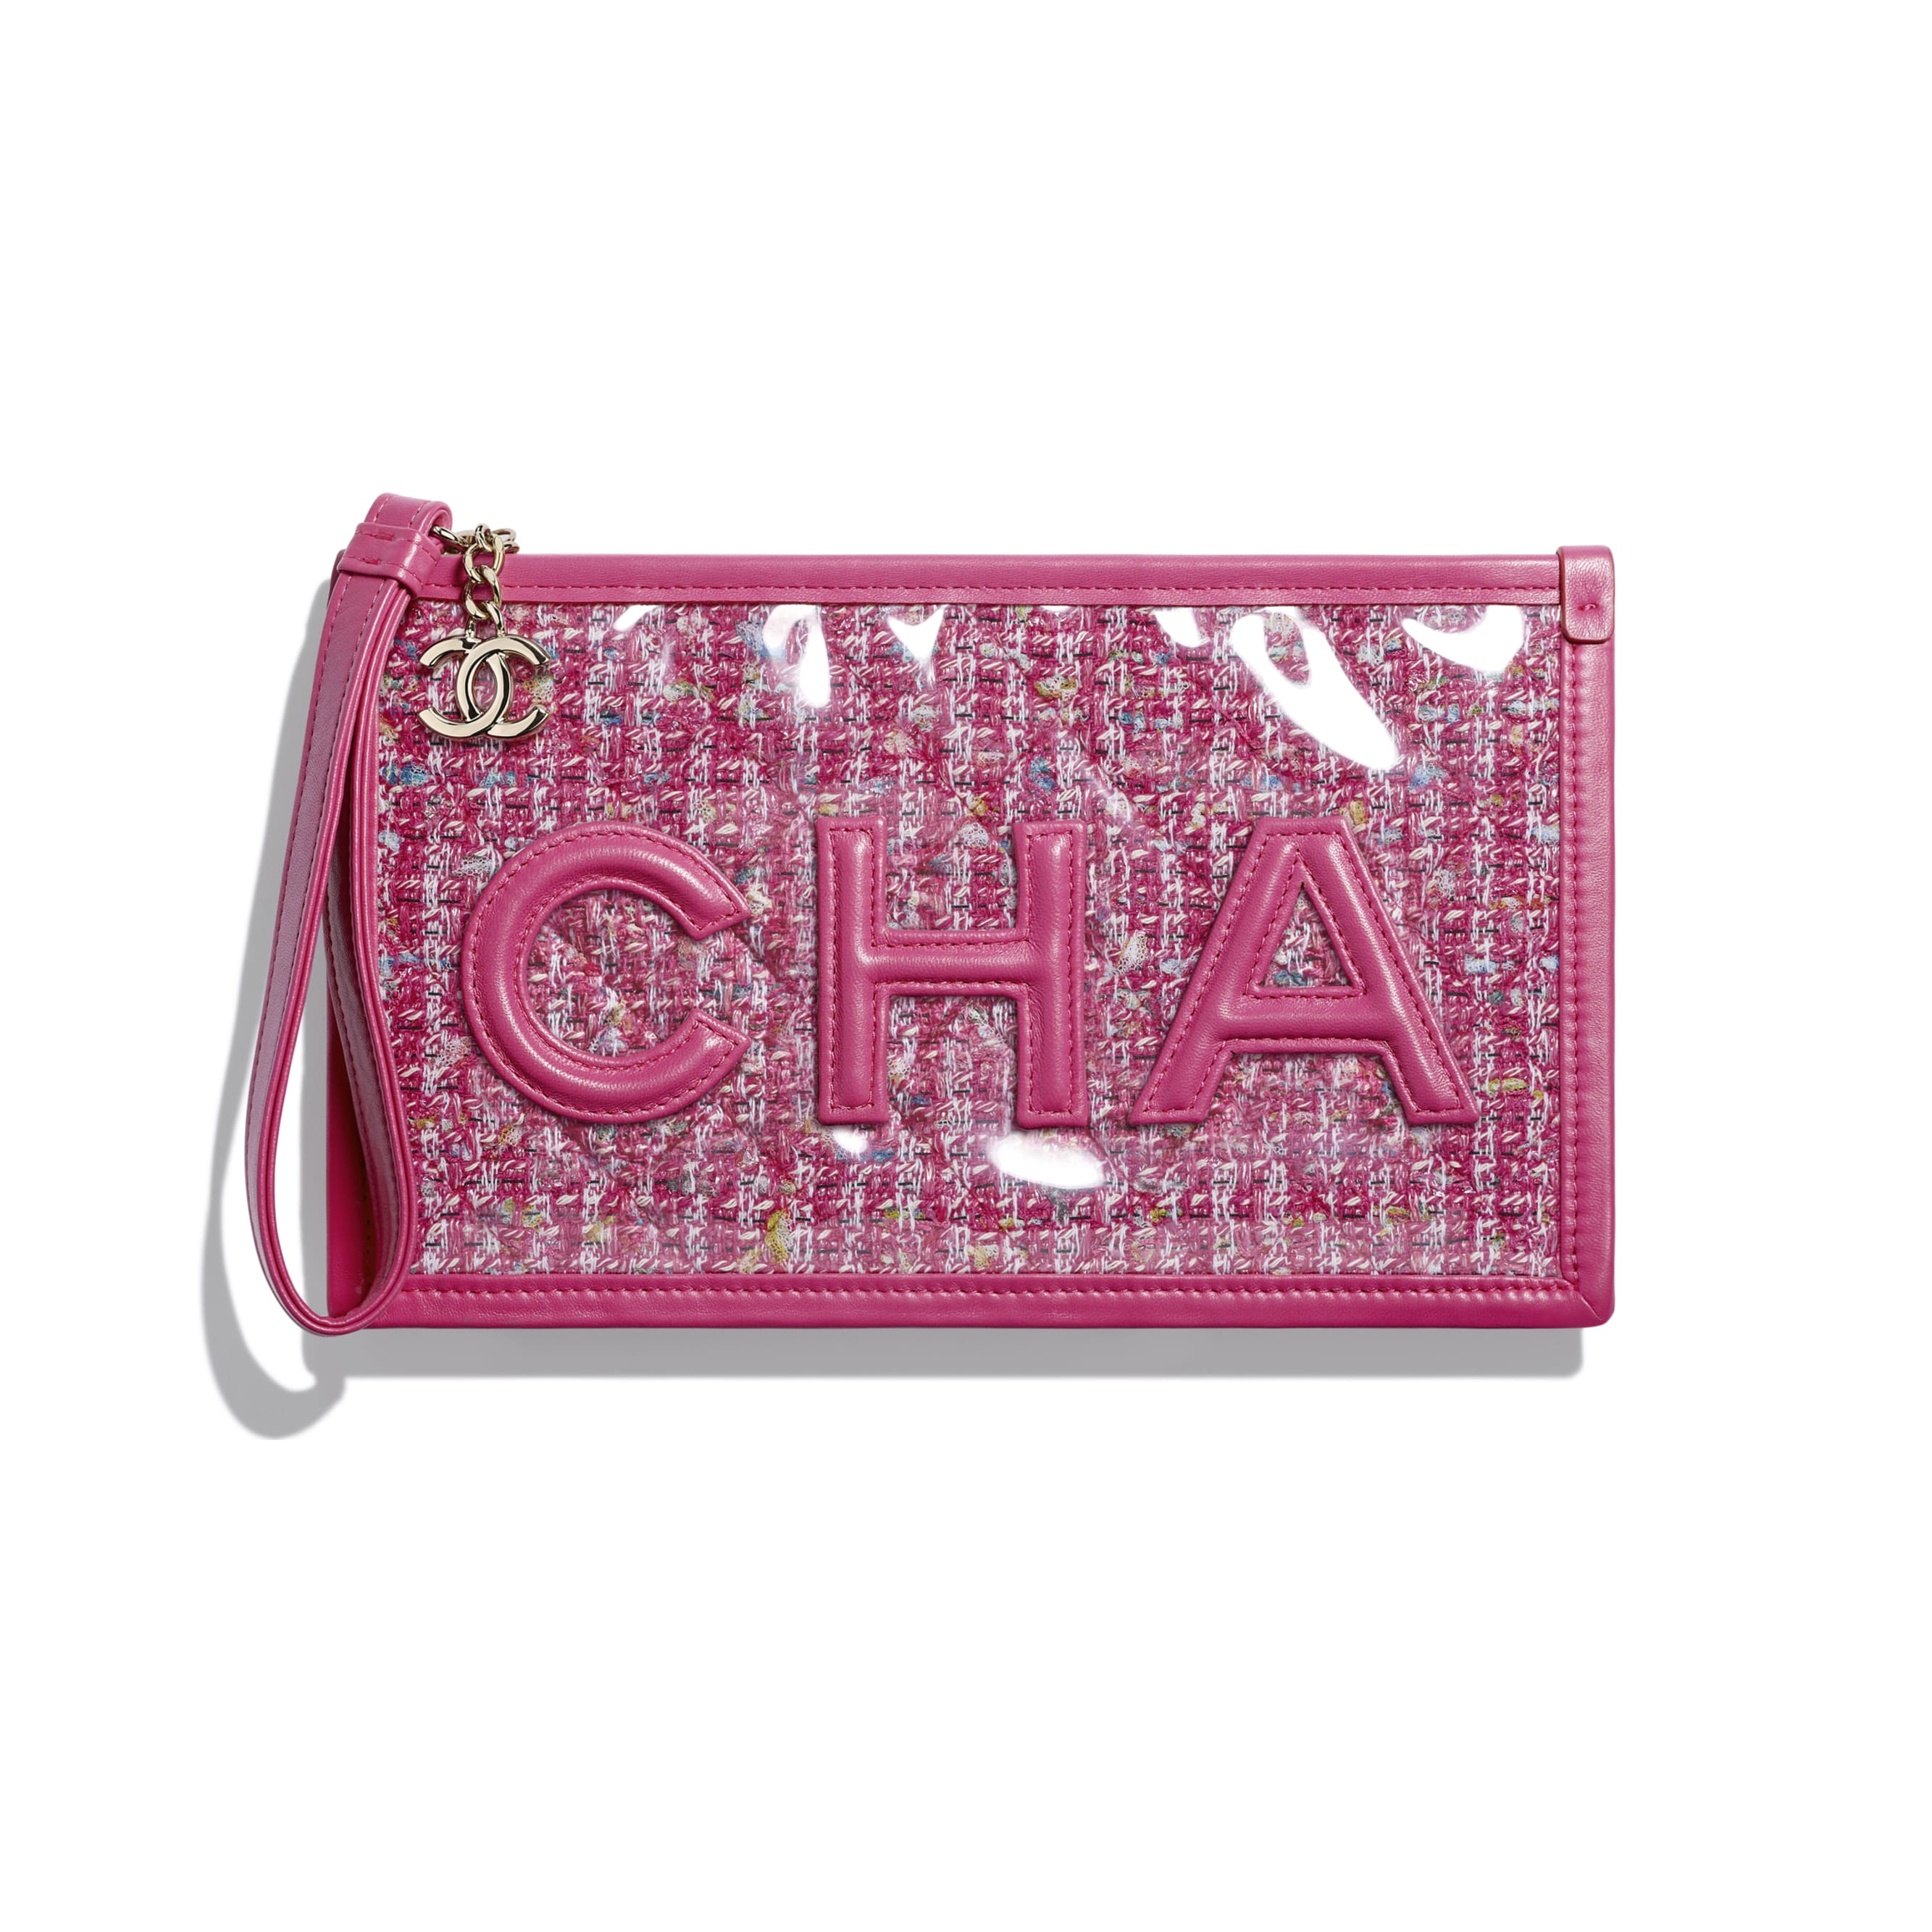 Pouch - Pink, Blue, White & Ochre - Tweed, PVC, Lambskin & Gold-Tone Metal - Default view - see standard sized version